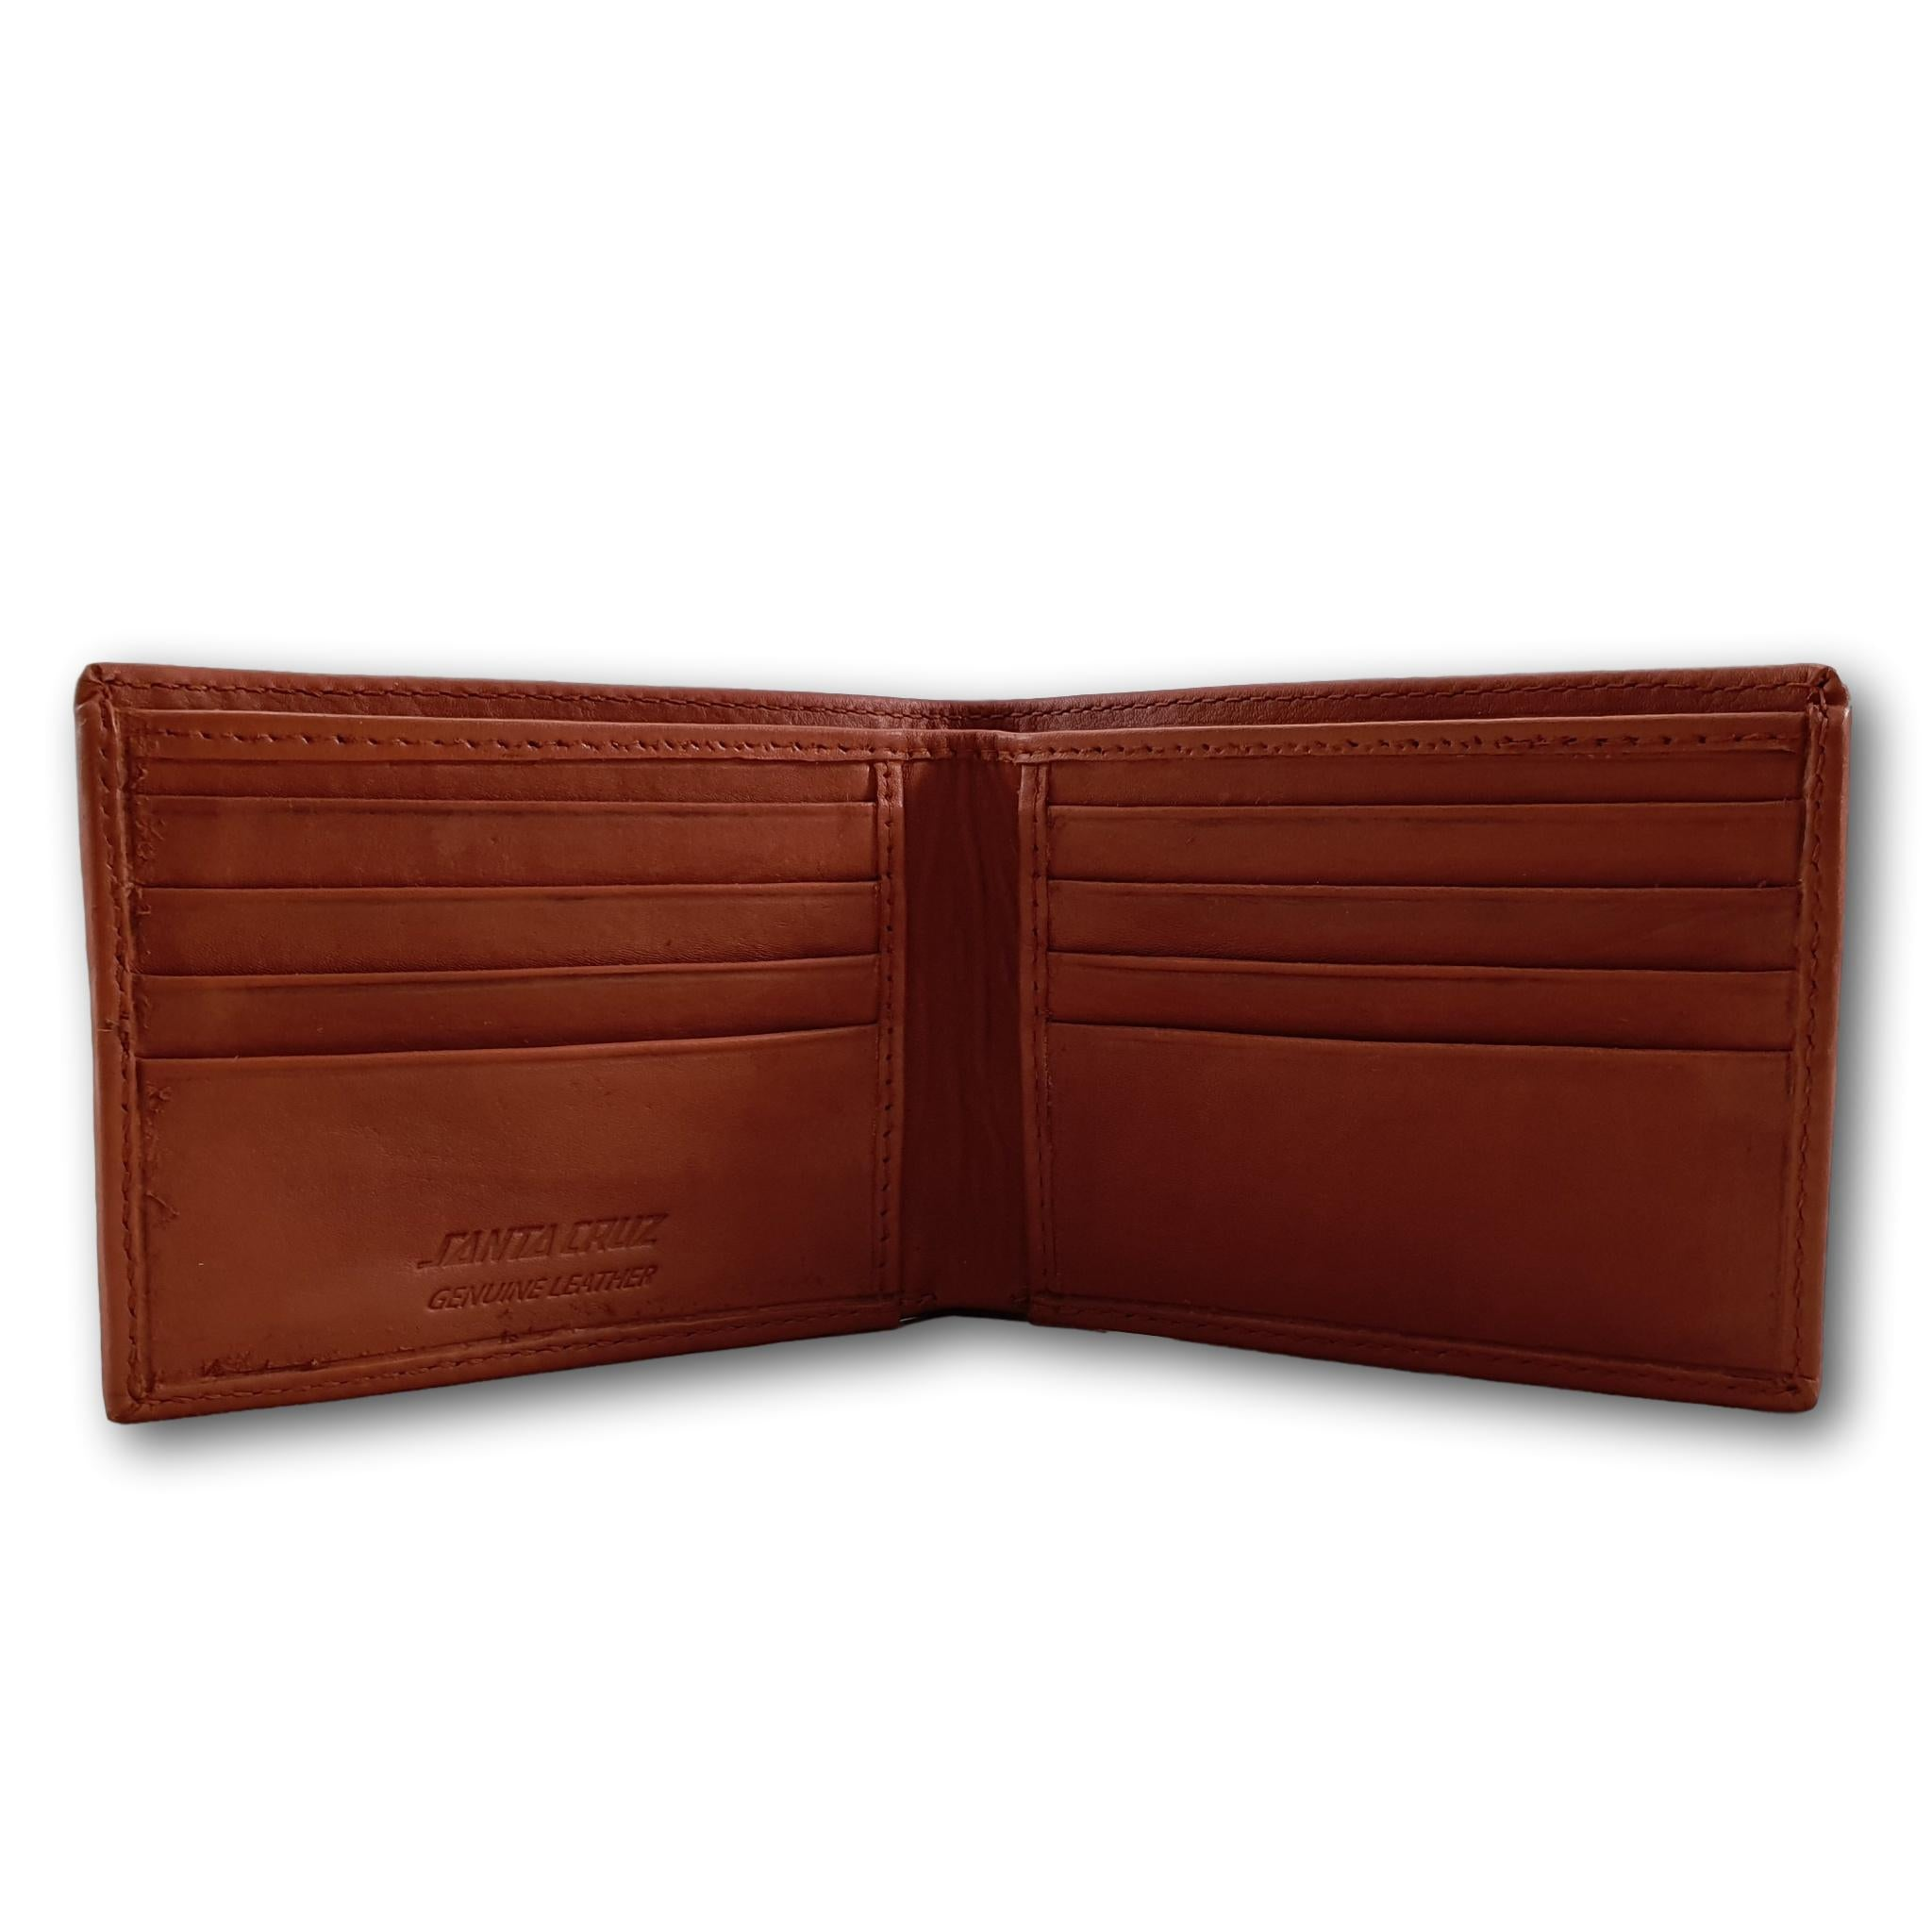 Santa Cruz Strip Premium Leather RFID Protect Wallet Tan